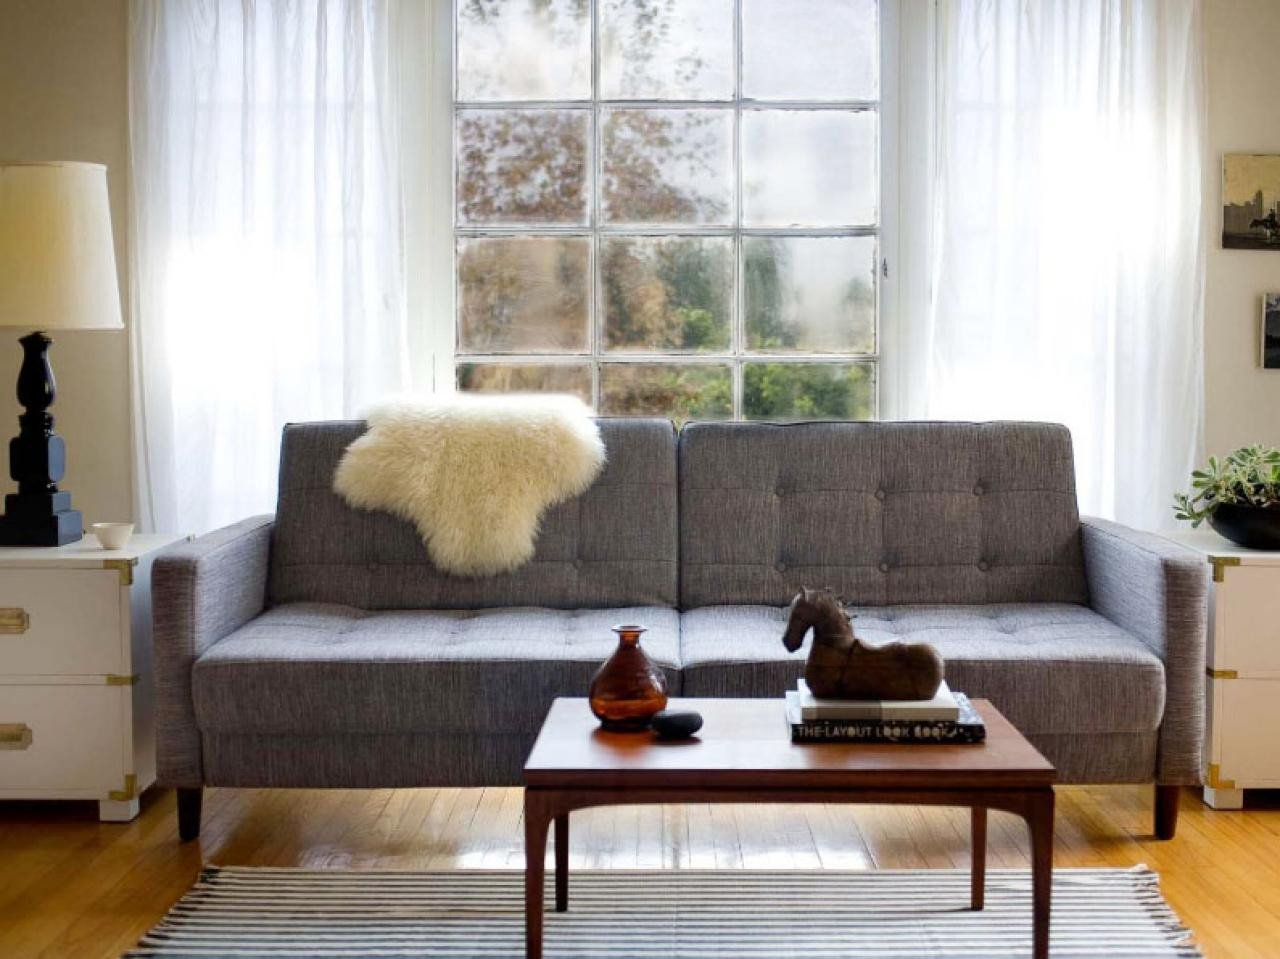 Modern Chair Living Room Decorating Ideas How to Create A Floor Plan and Furniture Layout